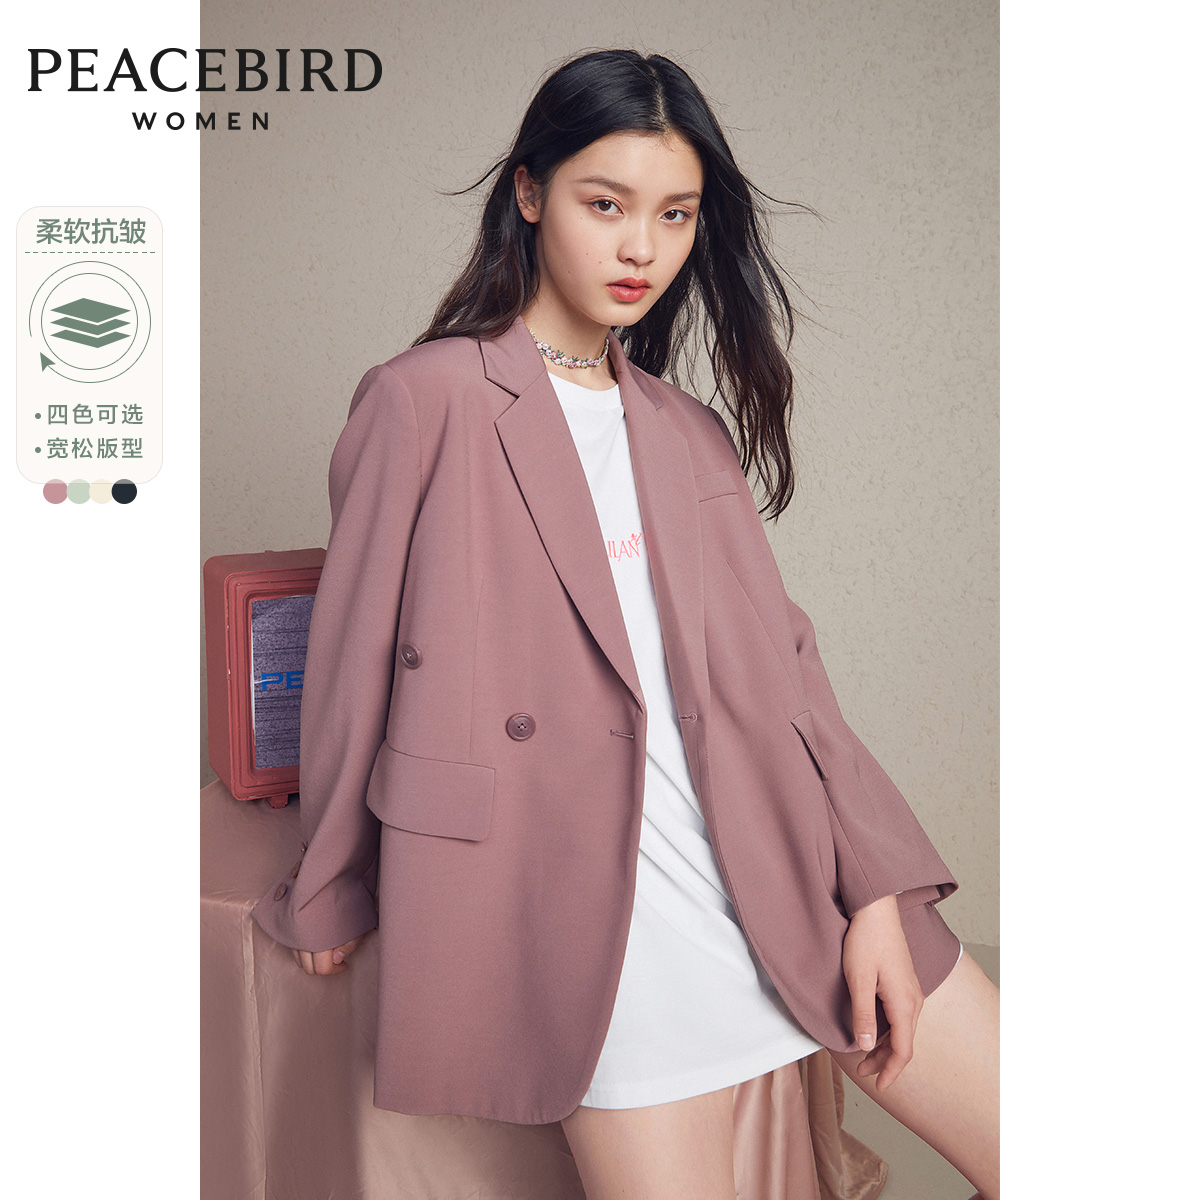 Peacebird anti-wrinkle drape suit jacket female 2021 spring and autumn new style Korean loose temperament fried street suit